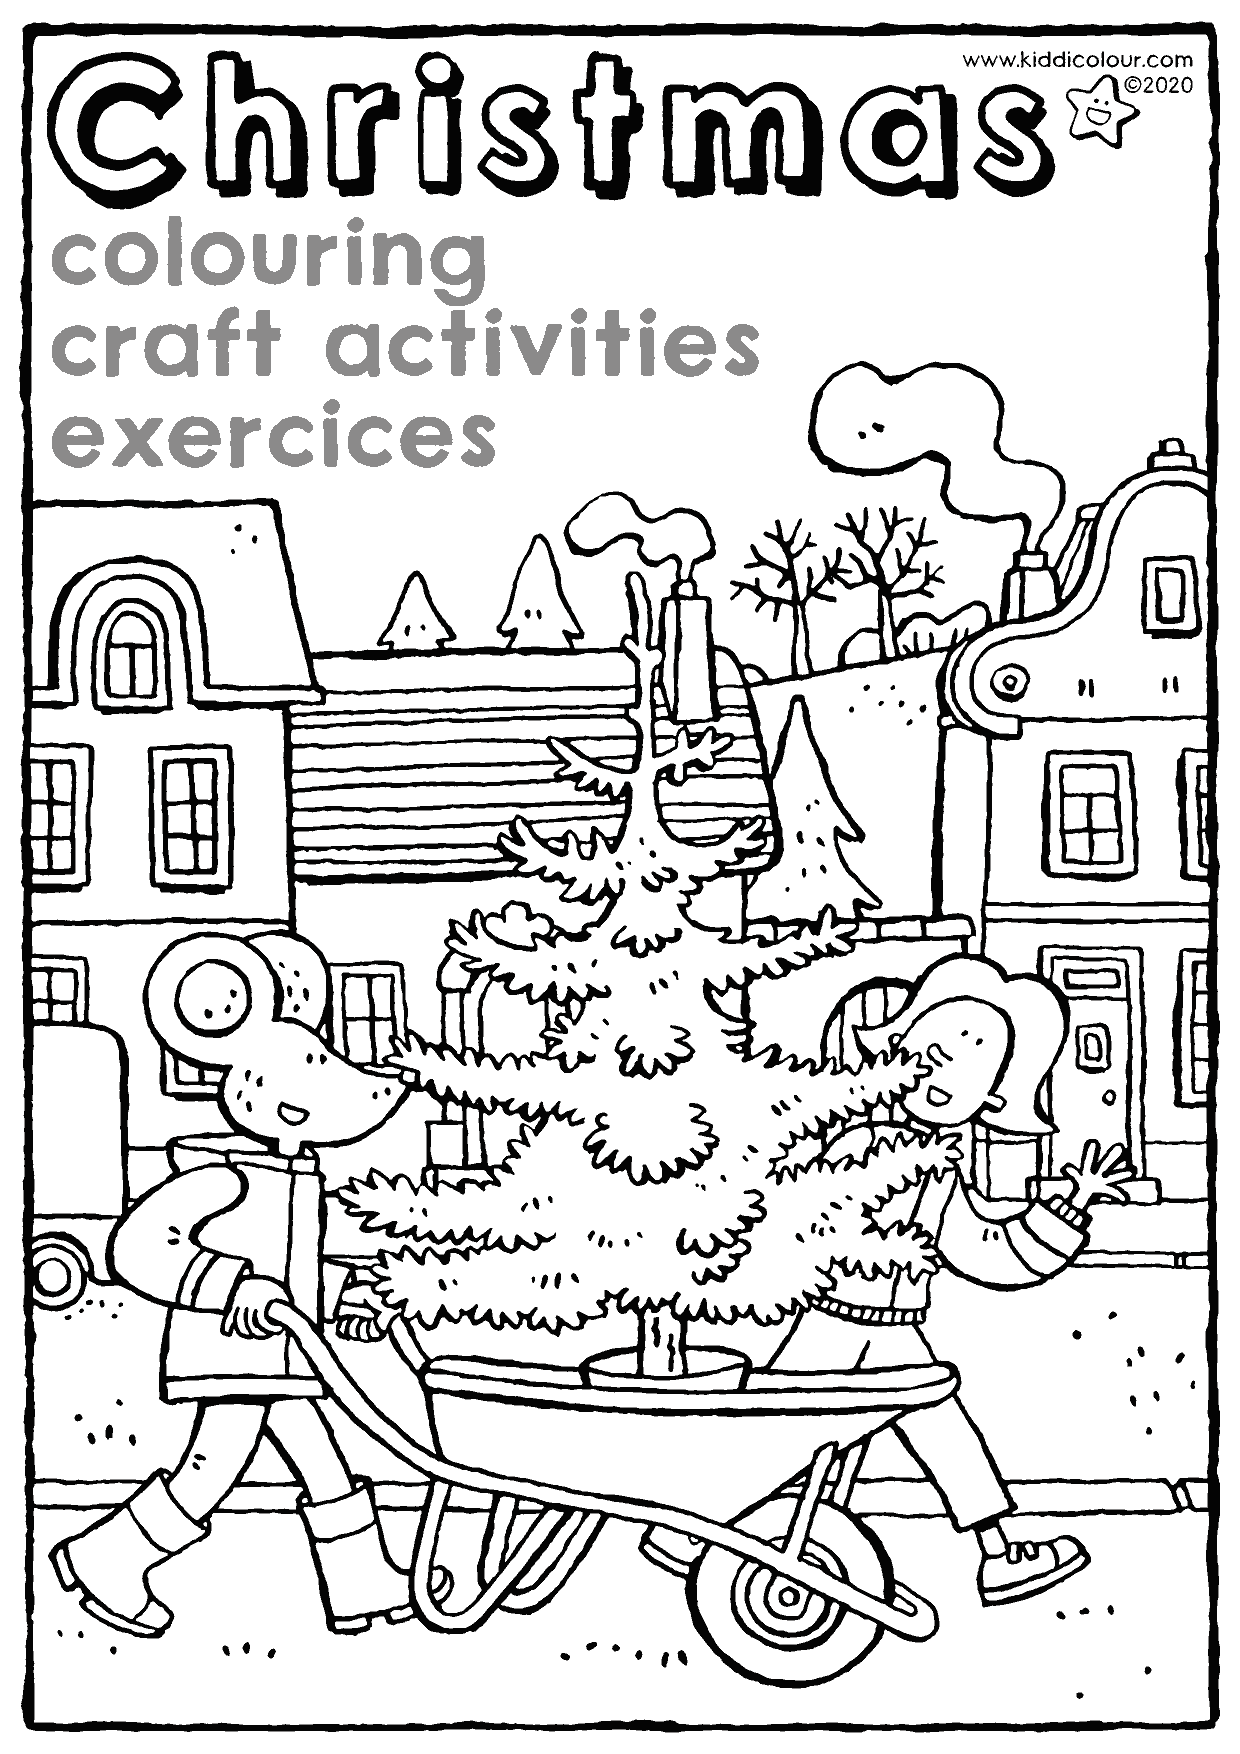 Christmas: colouring, craft activities and exercises